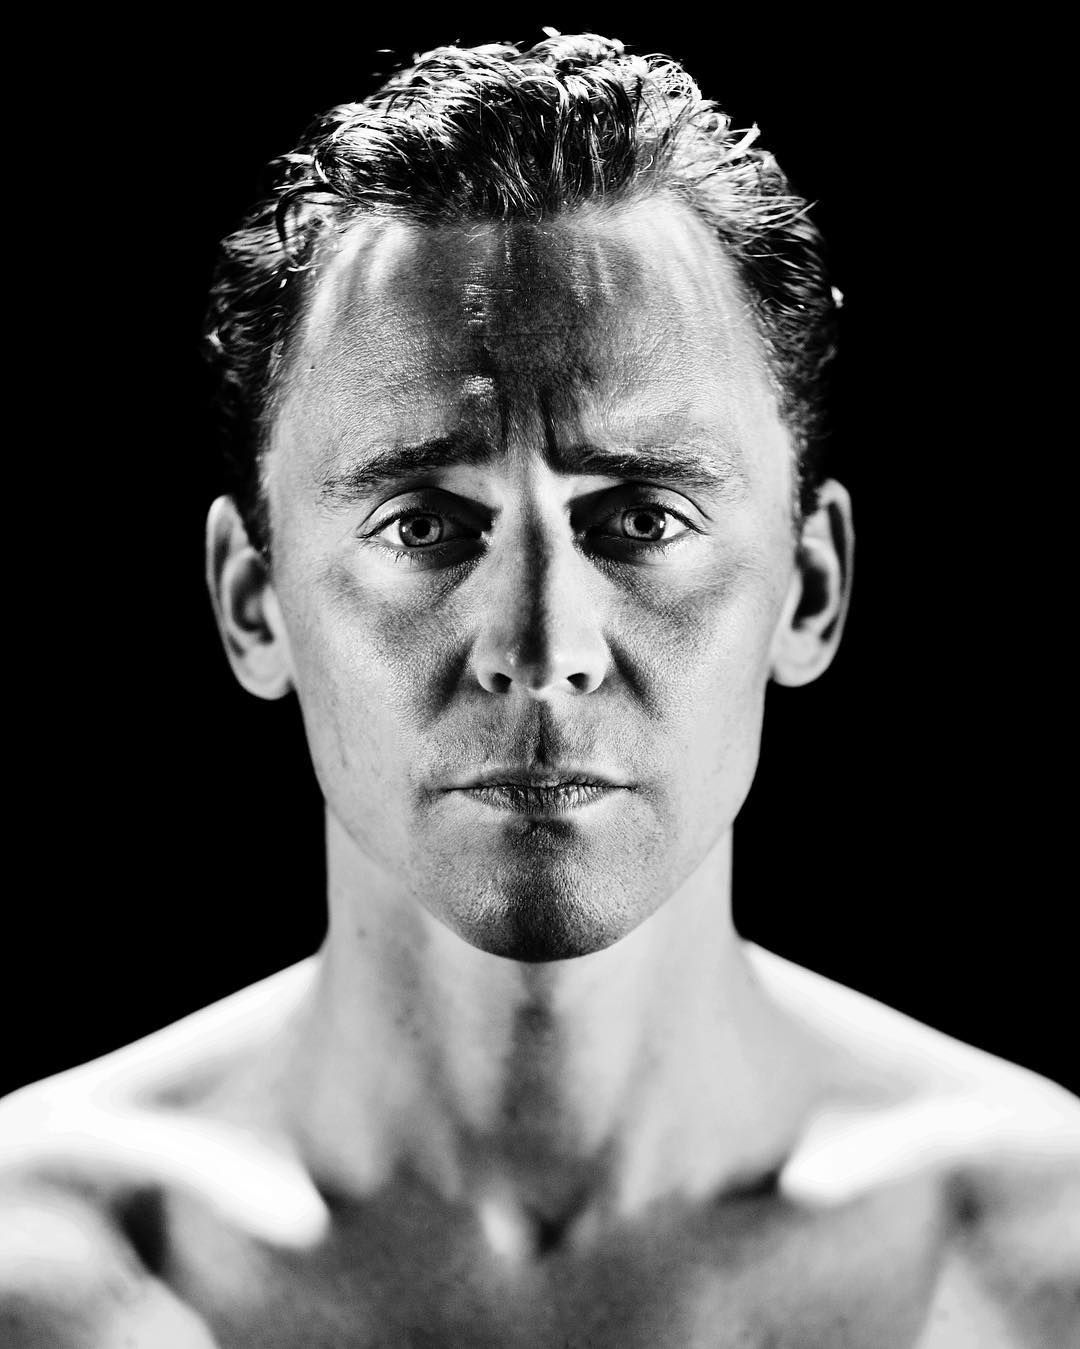 pics Tom Hiddleston (born 1981)